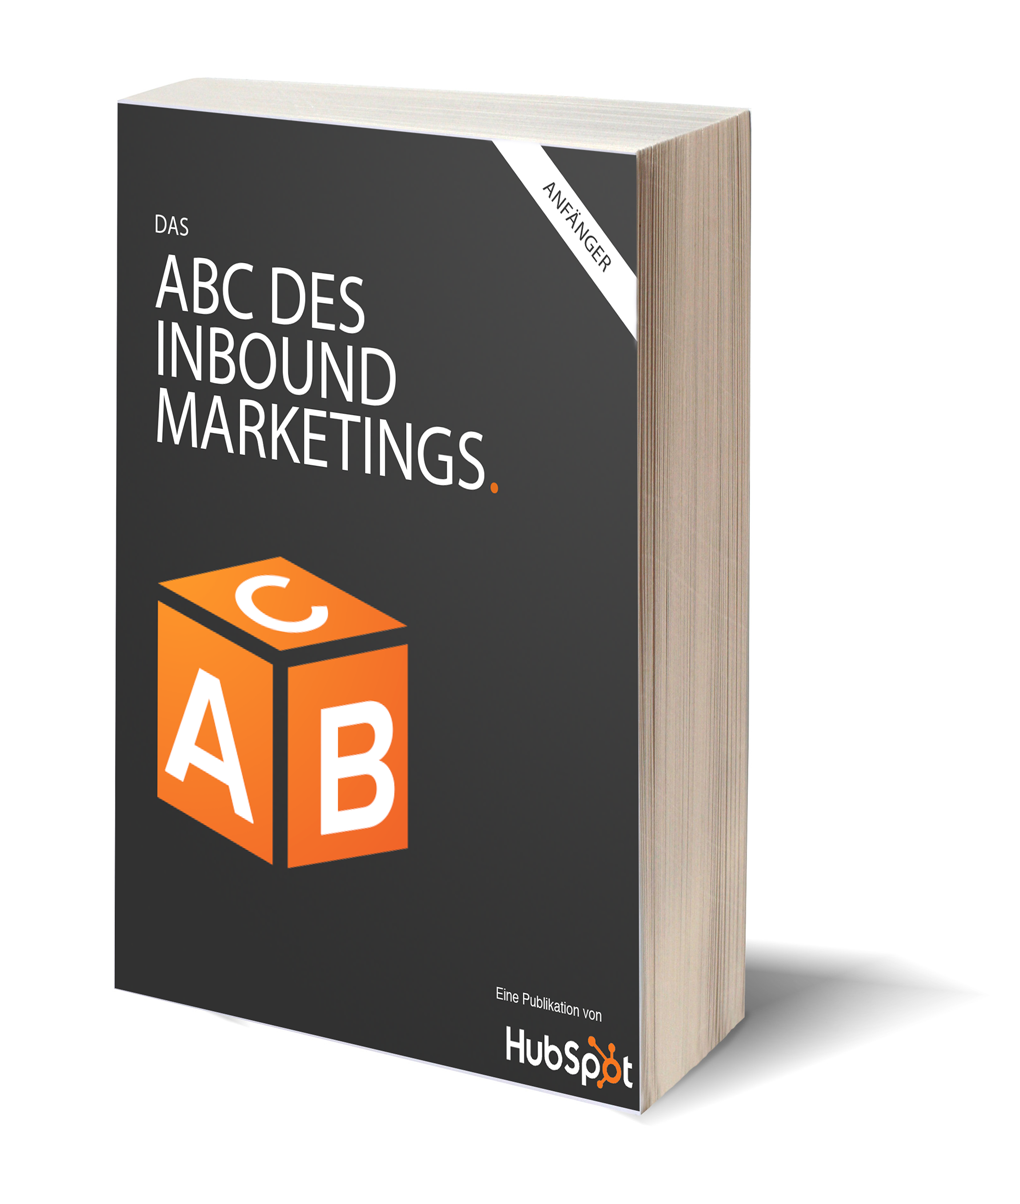 Das ABC des Inbound Marketings